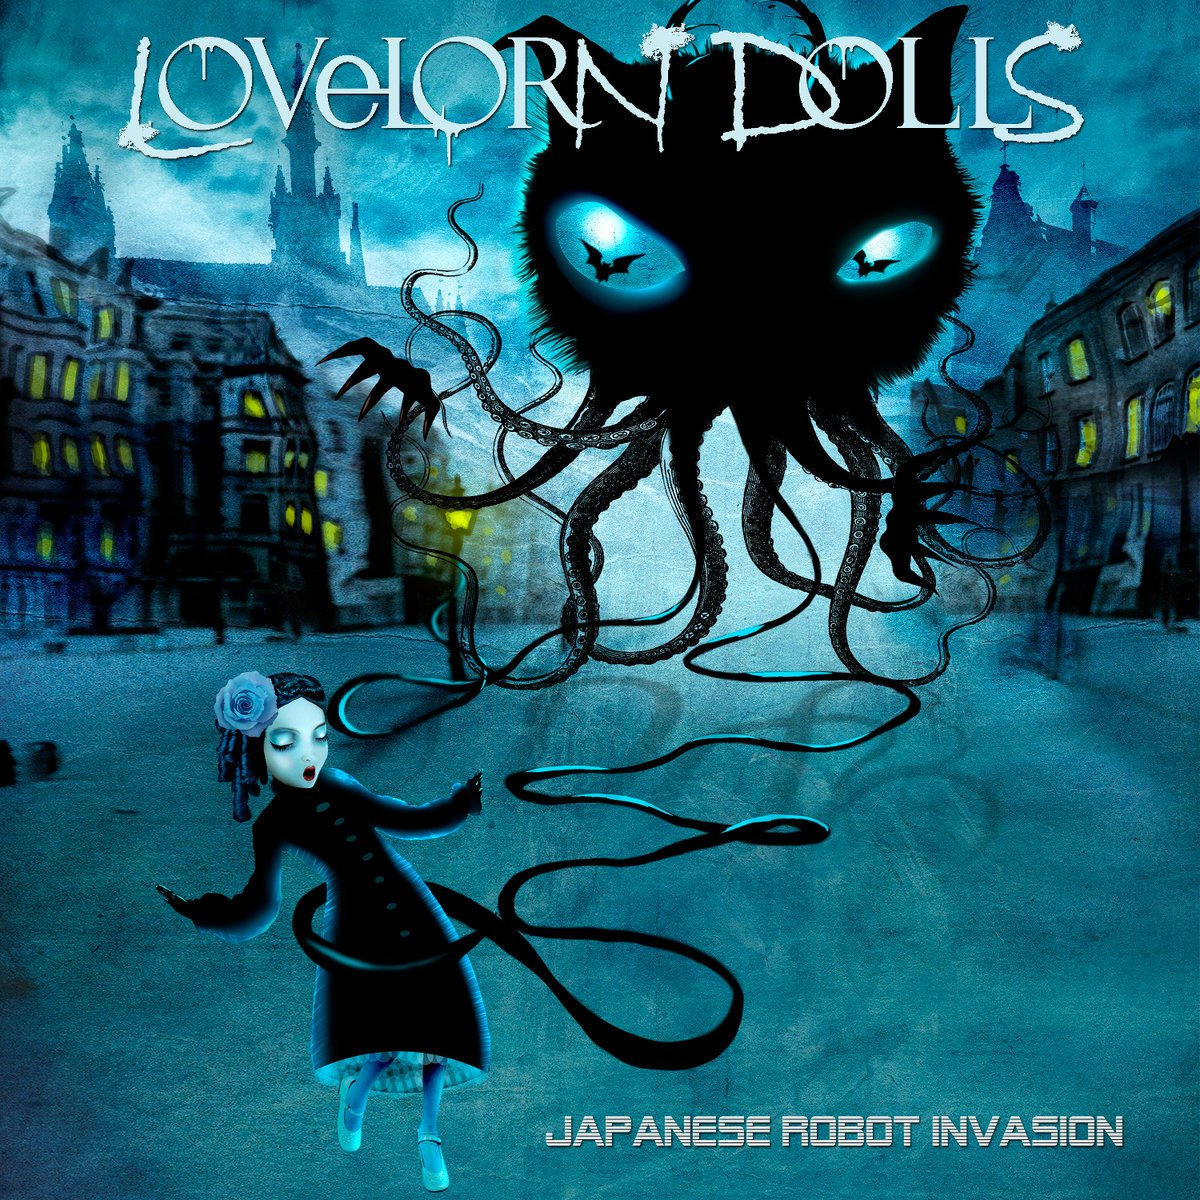 CD : Lovelorn Dolls - Japanese Robot Invasion (CD)